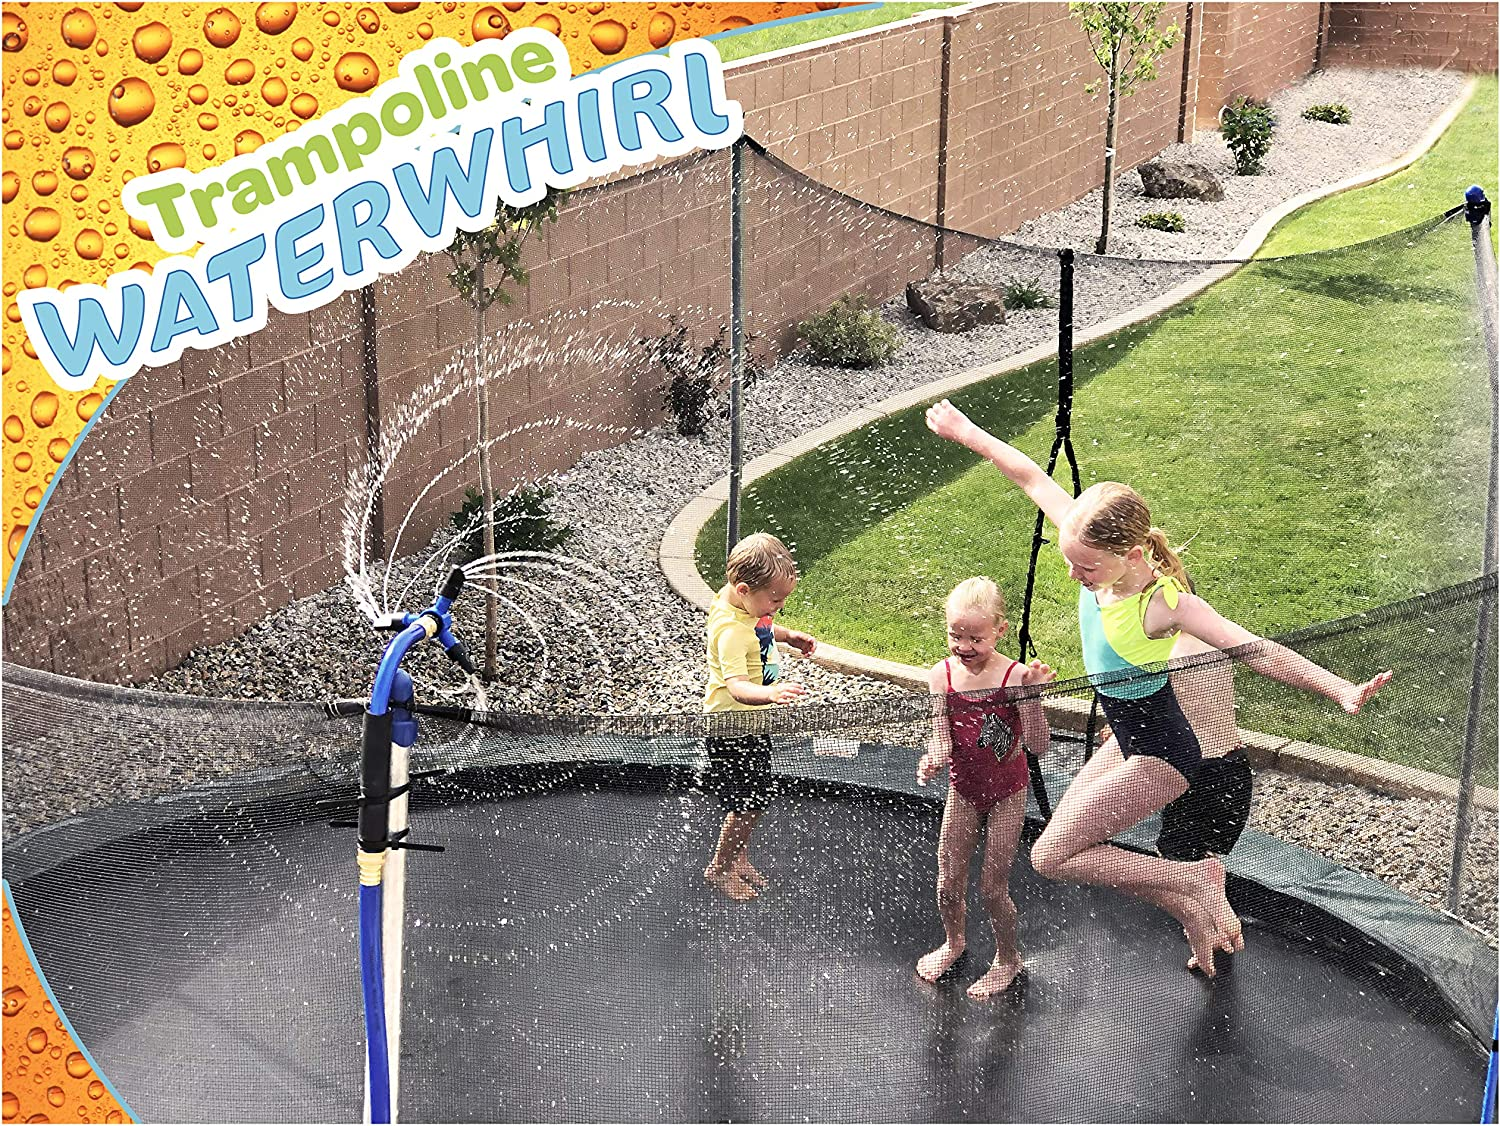 ThrillZoo Trampoline WaterWhirl - Kids Fun Summer Outdoor Water Park Game Sprinkler - Waterpark Toys for Boys Girls and Adults - Accessories Included - Toy Attaches on Safety Net Pole